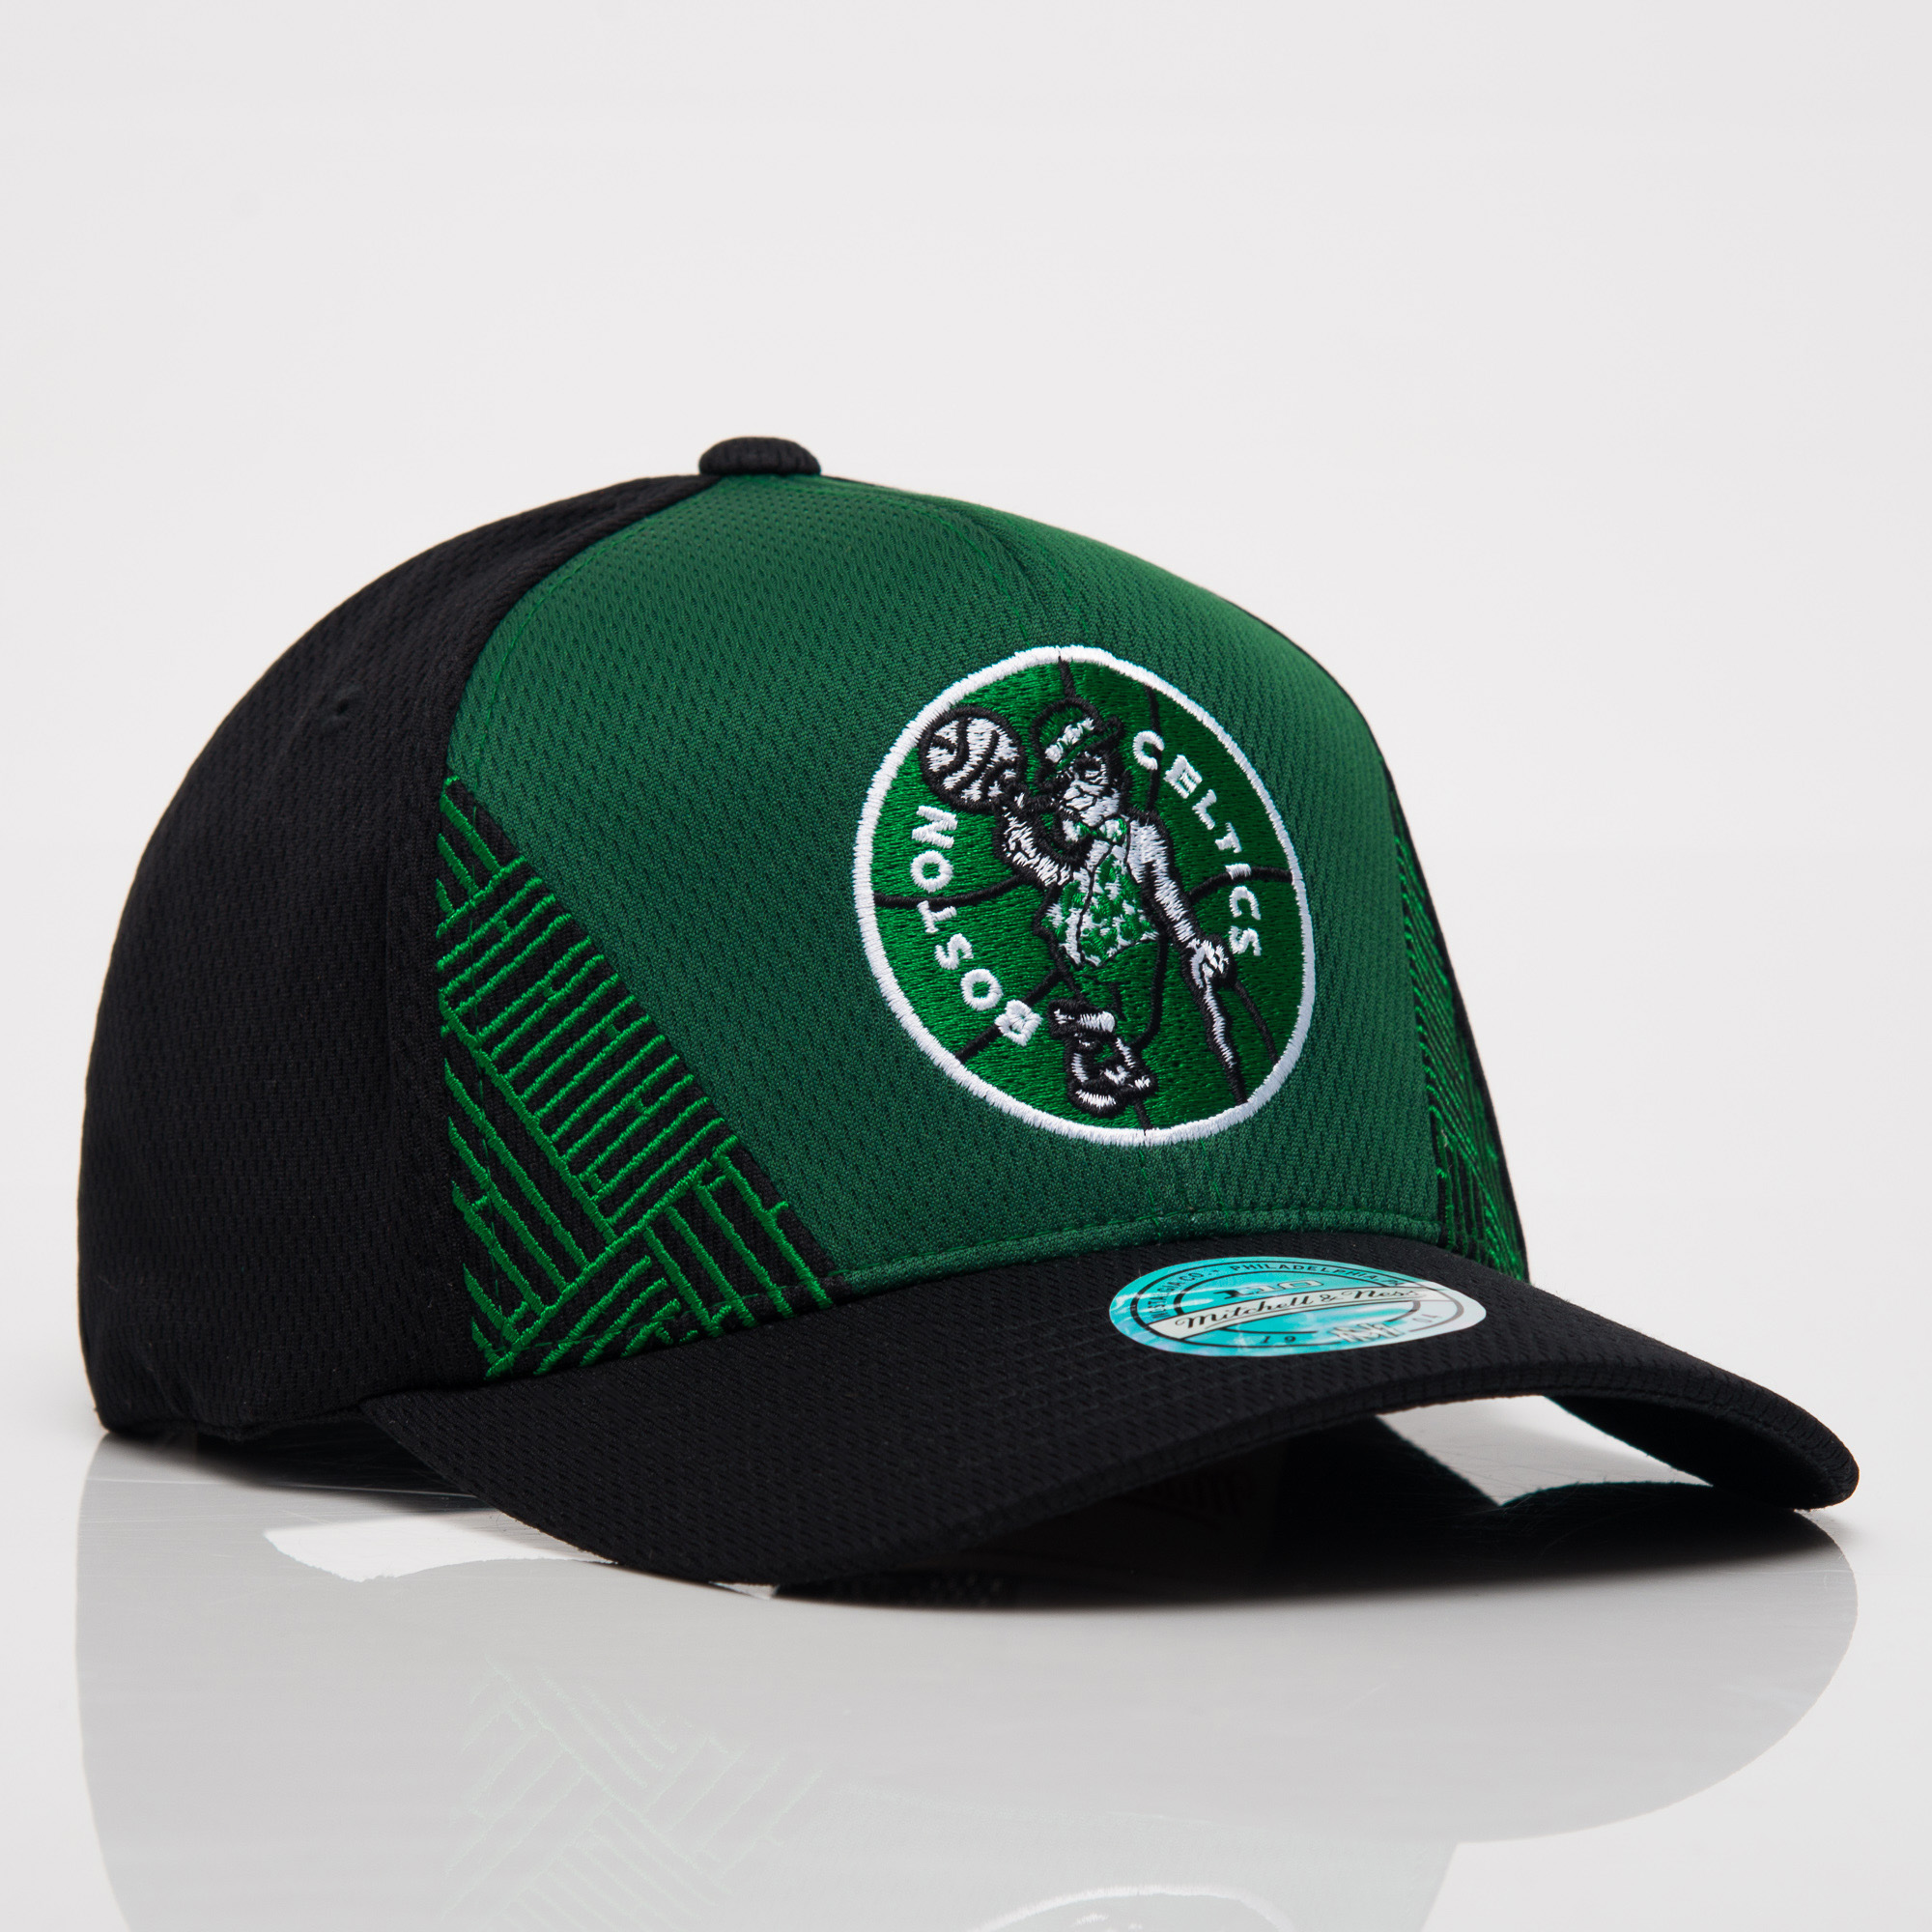 info for b771e 9976b Mitchell & Ness NBA Boston Celtics DNA Snapback - NBA Shop ...